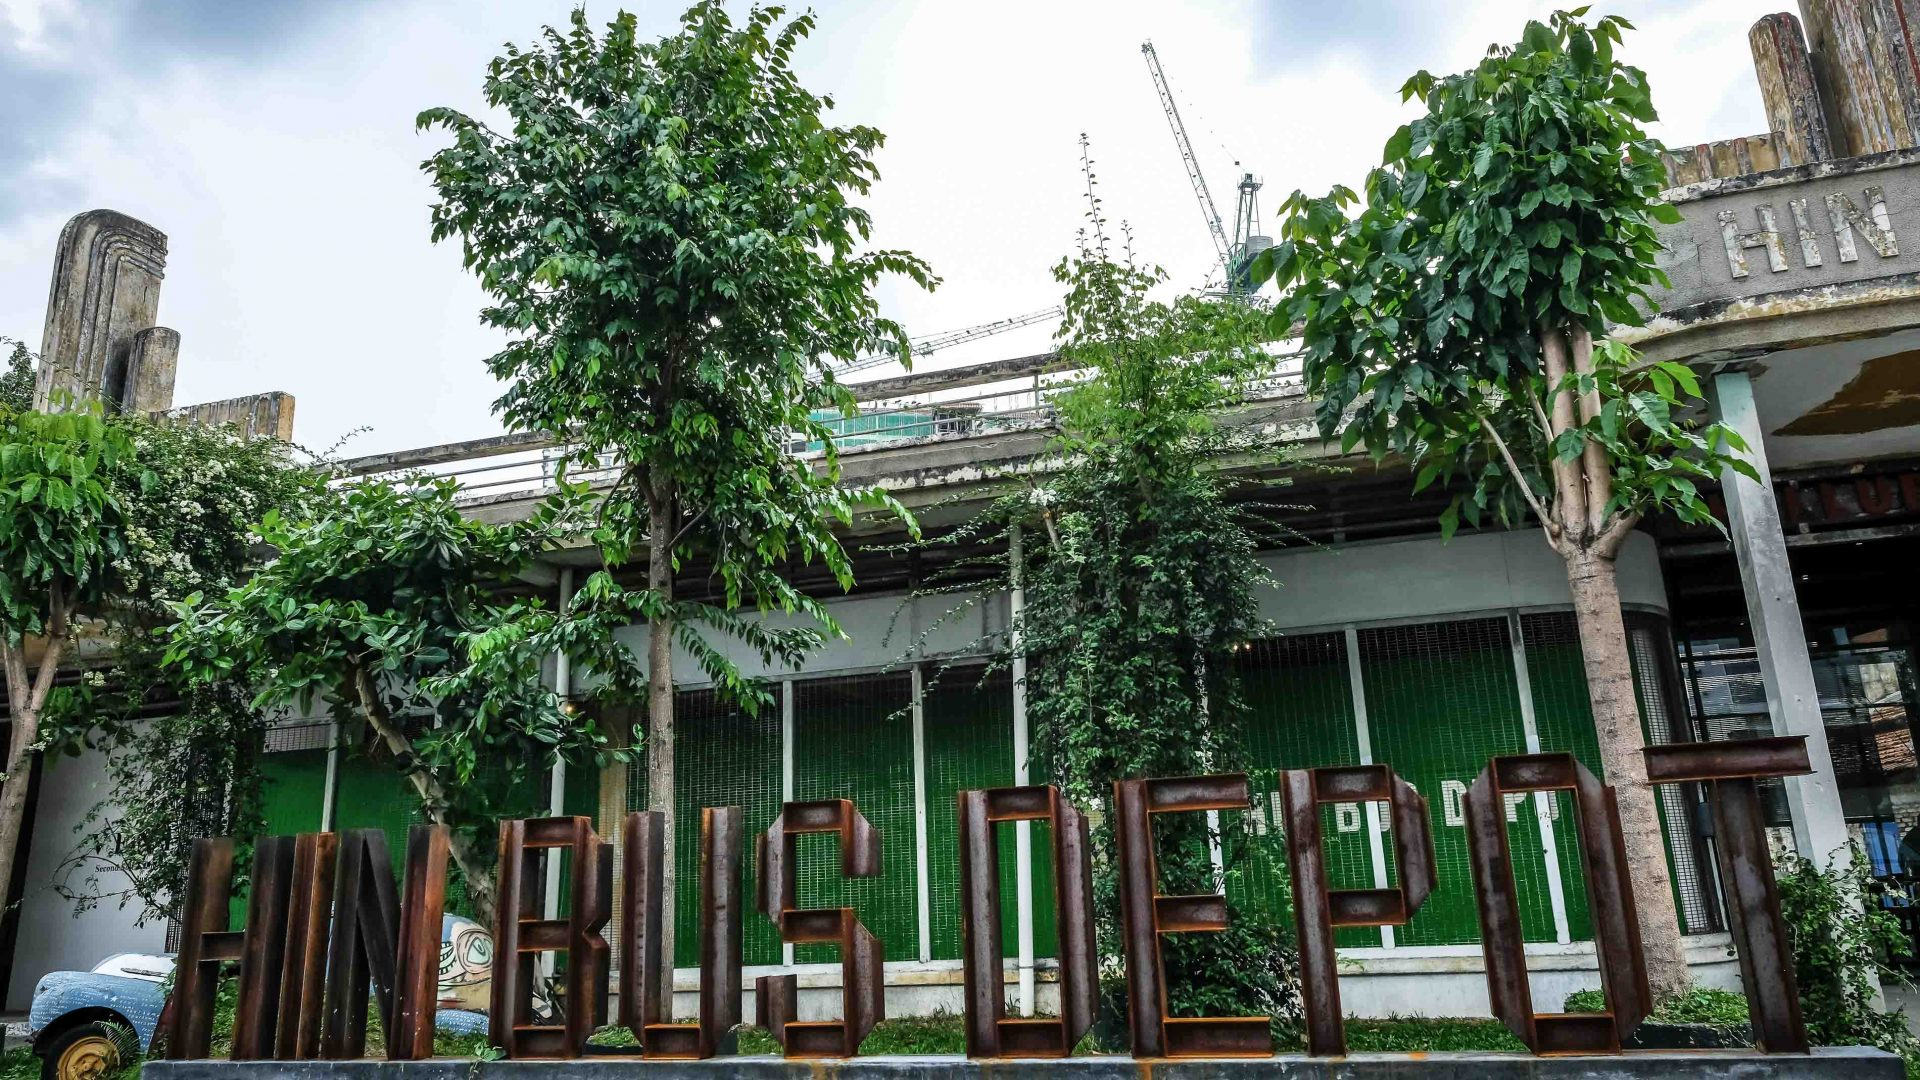 Once a dilapidated bus park, Hin Bus has become George Town's most popular retro-chic art space.